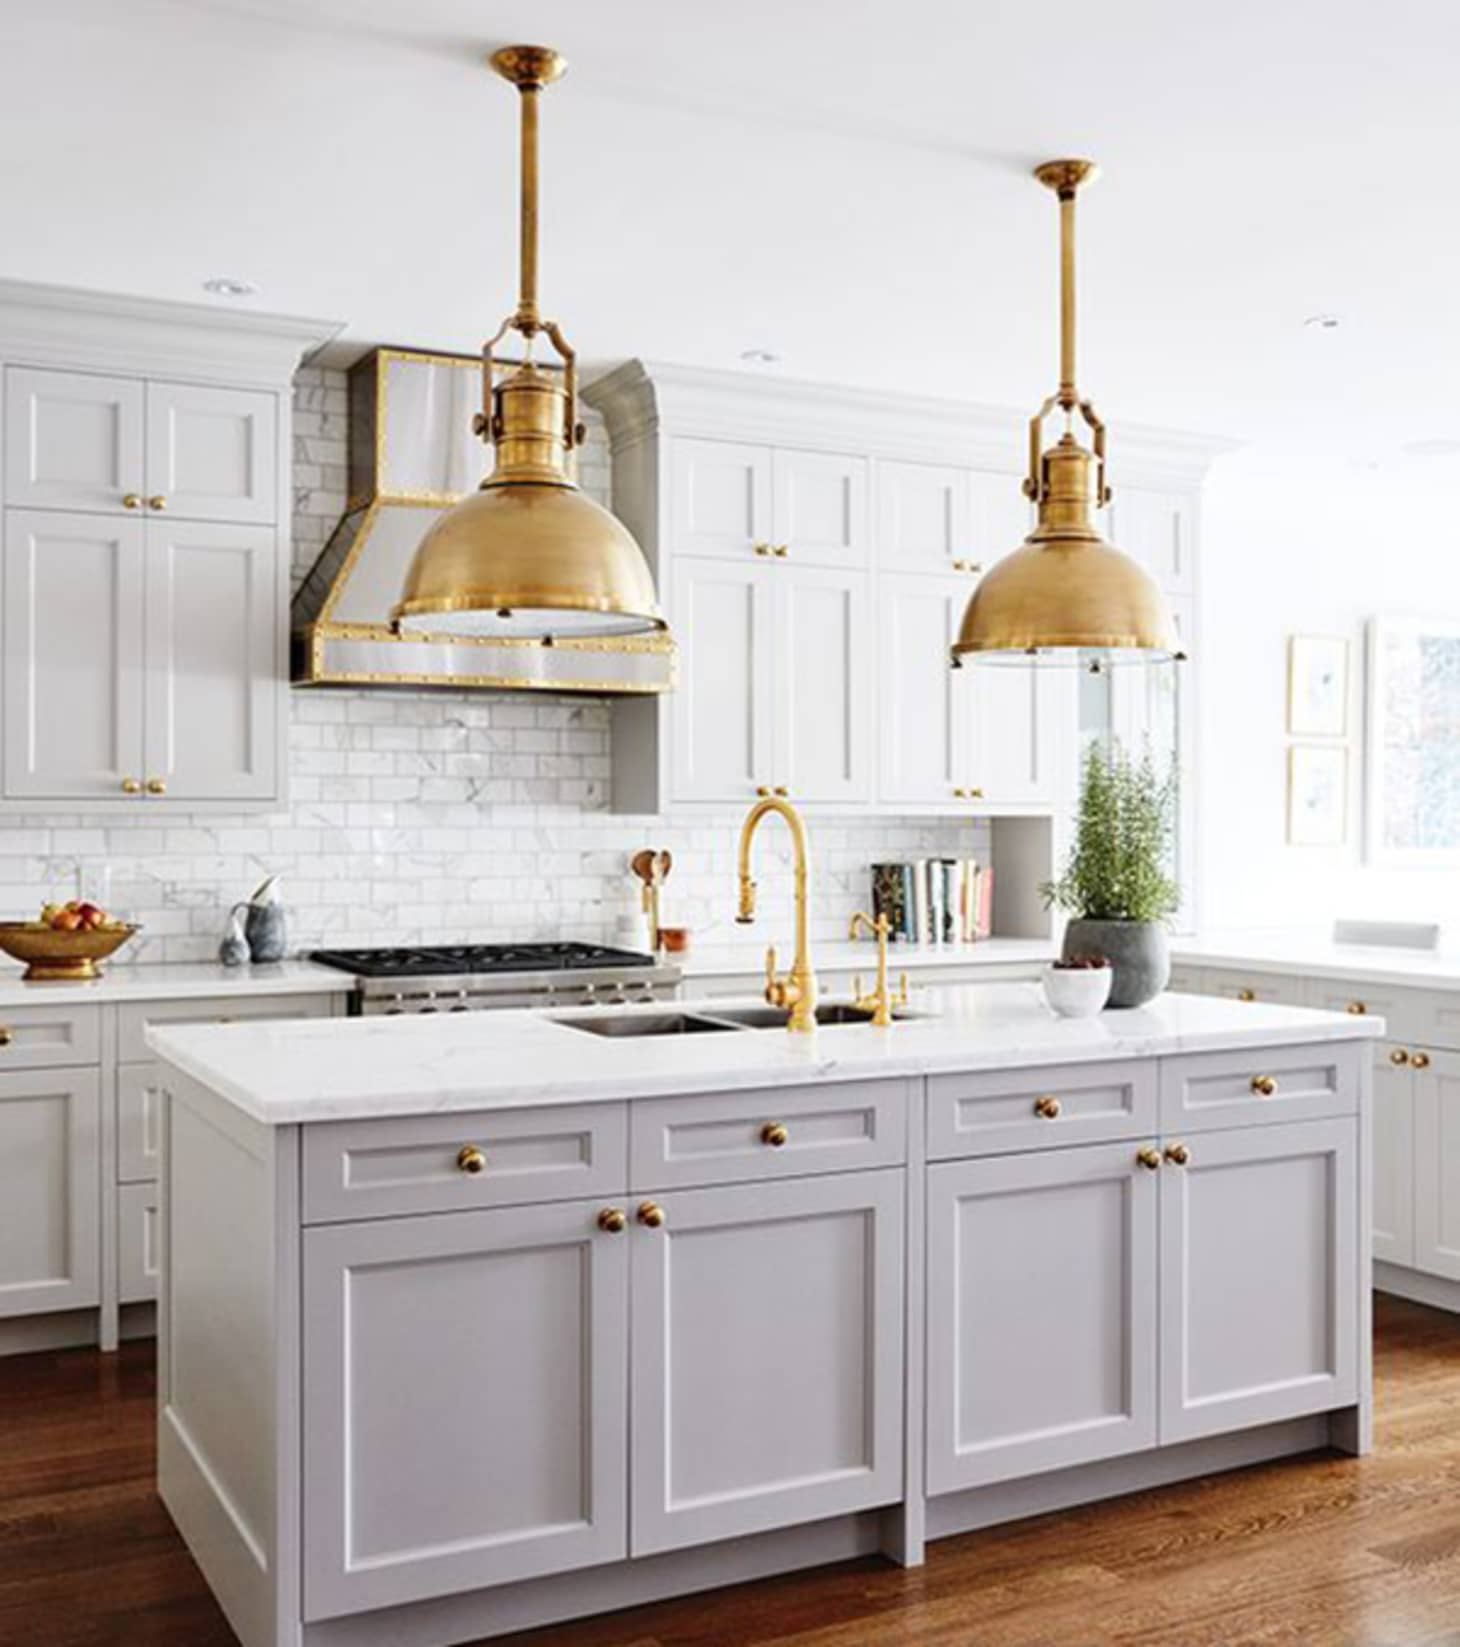 Stylish Brass Kitchen Hardware Shopping Guide Apartment